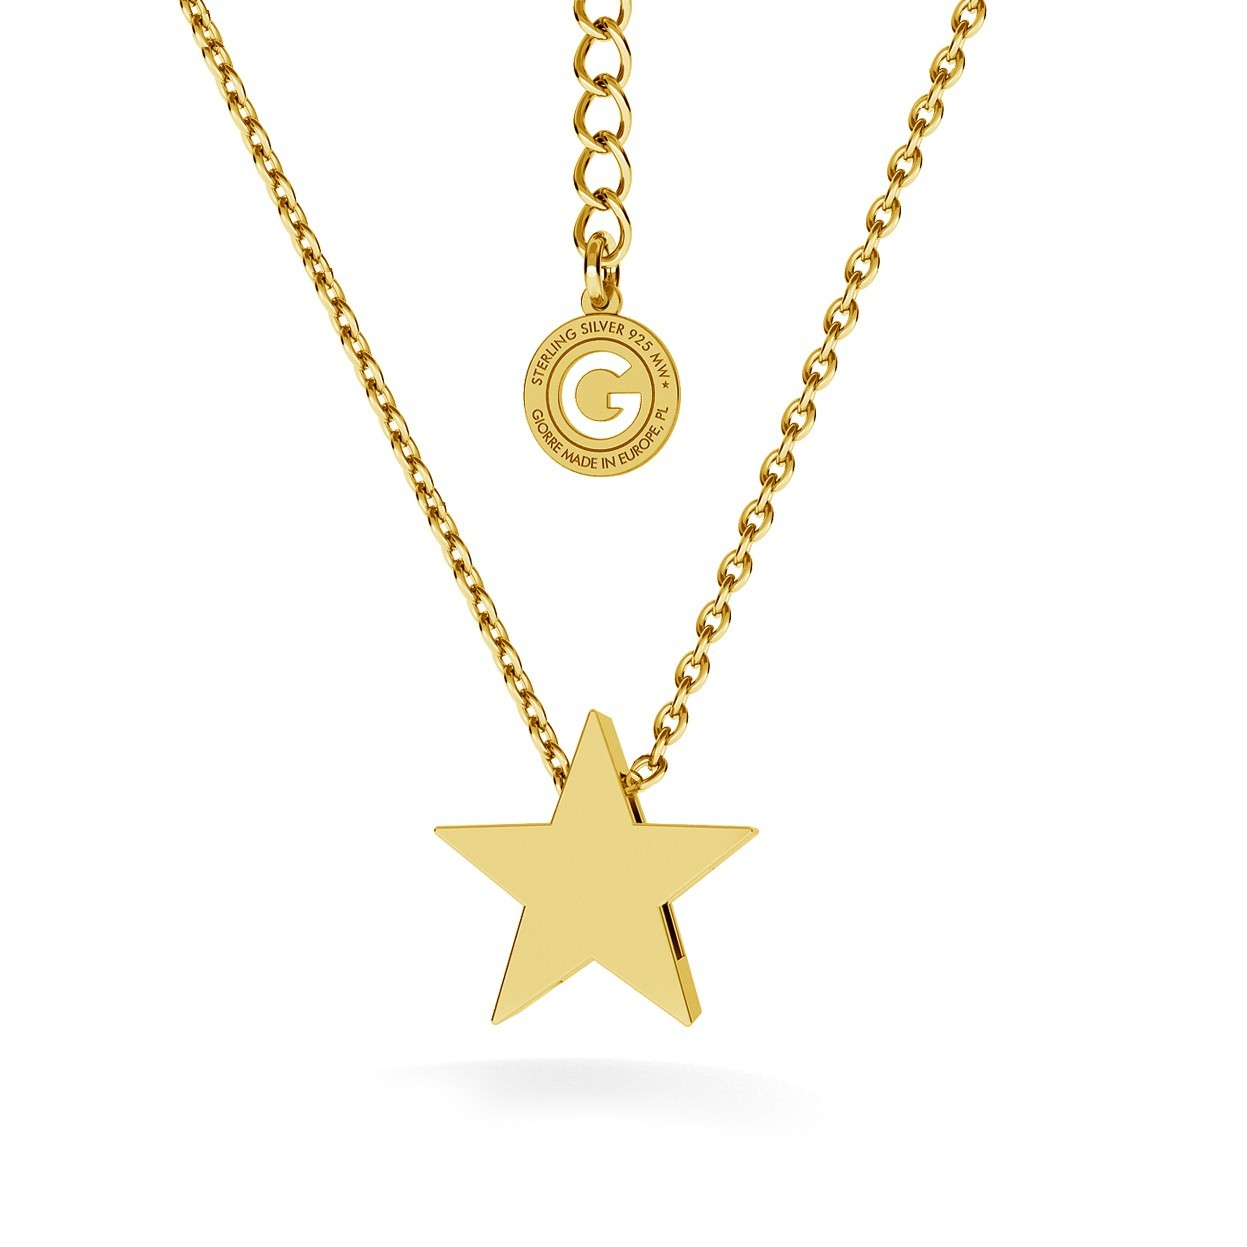 Star necklace, sterling silver 925